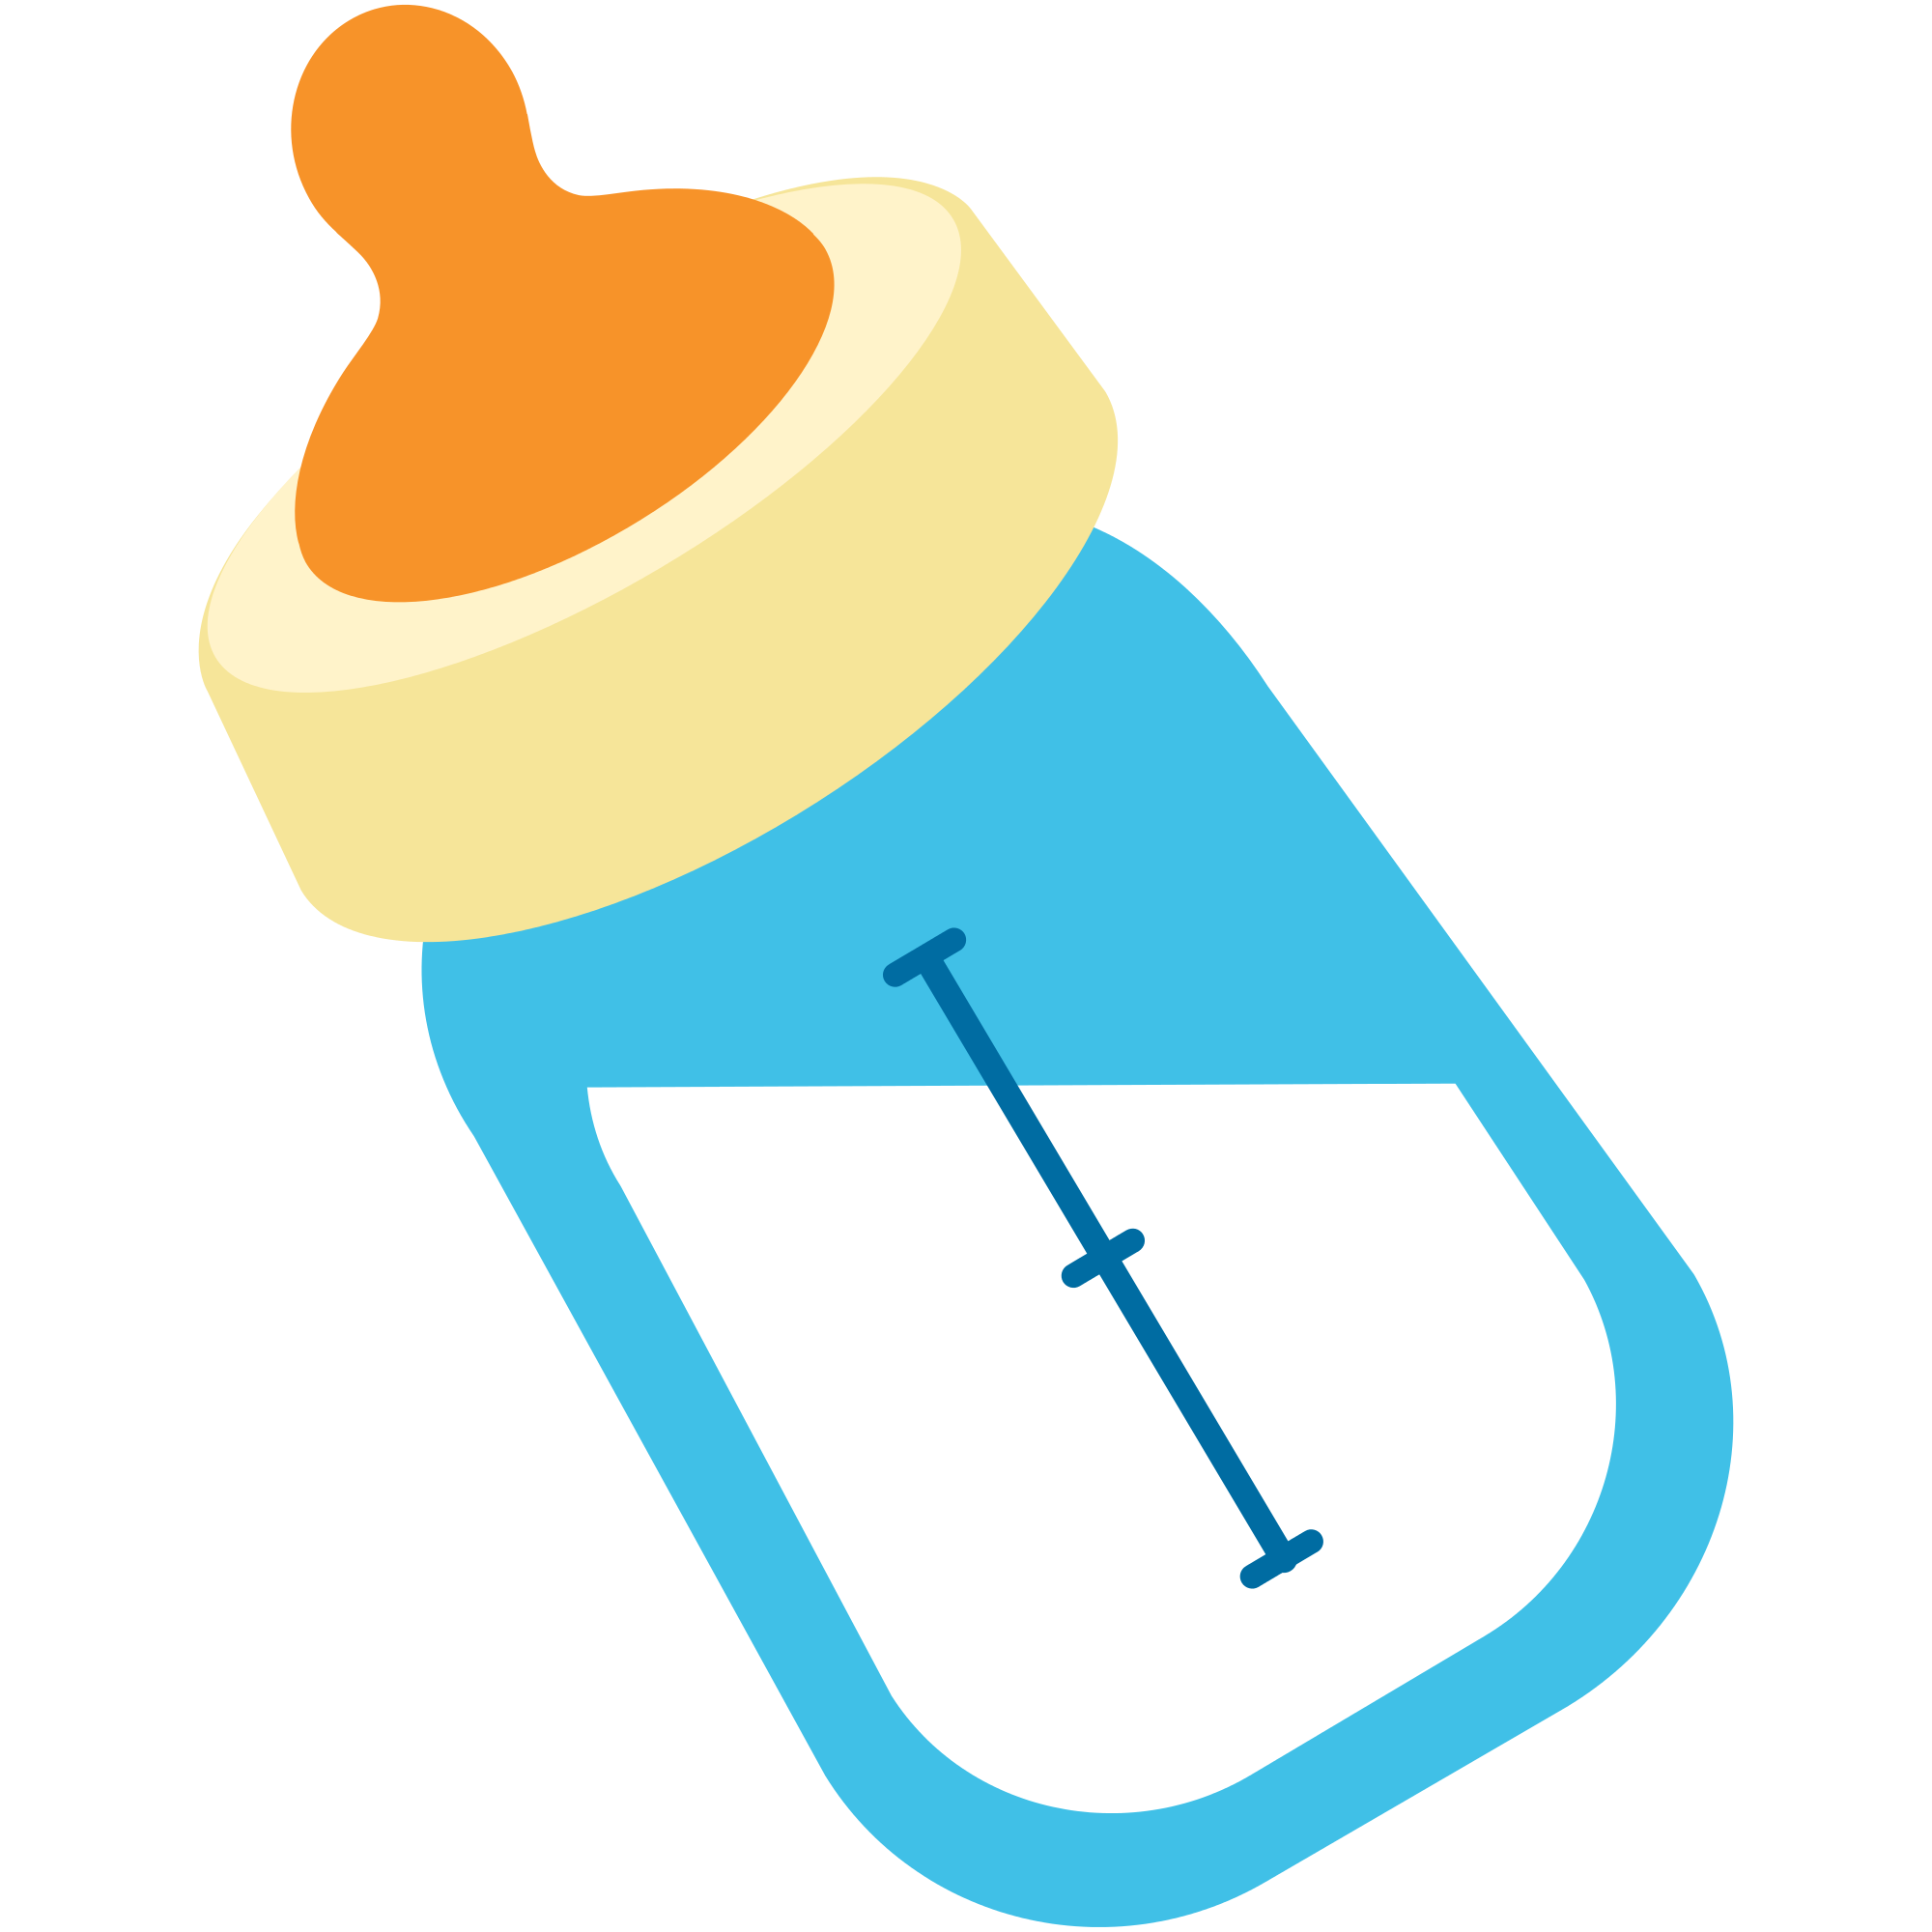 Baby Milk Bottle Png, png collections at sccpre.cat.